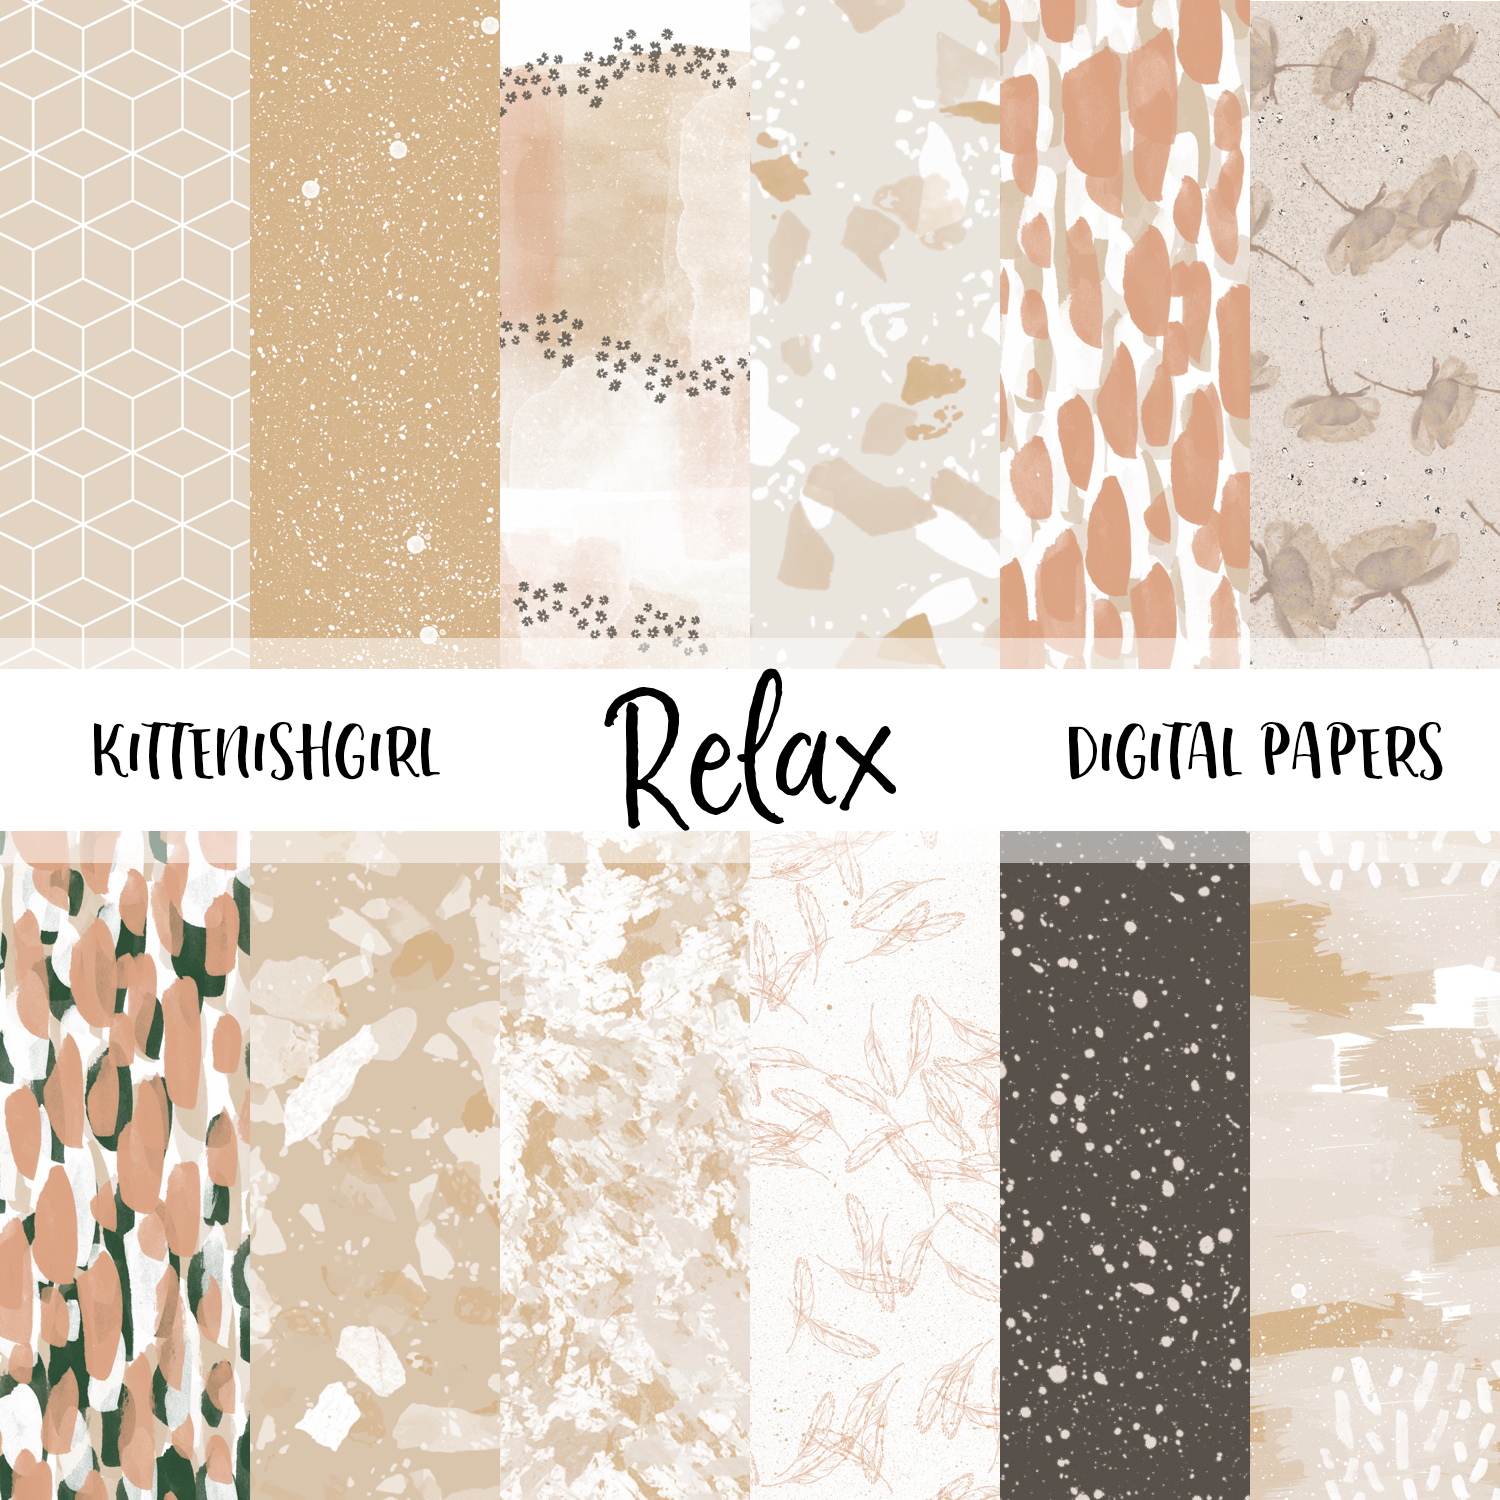 Relax // Digital Papers